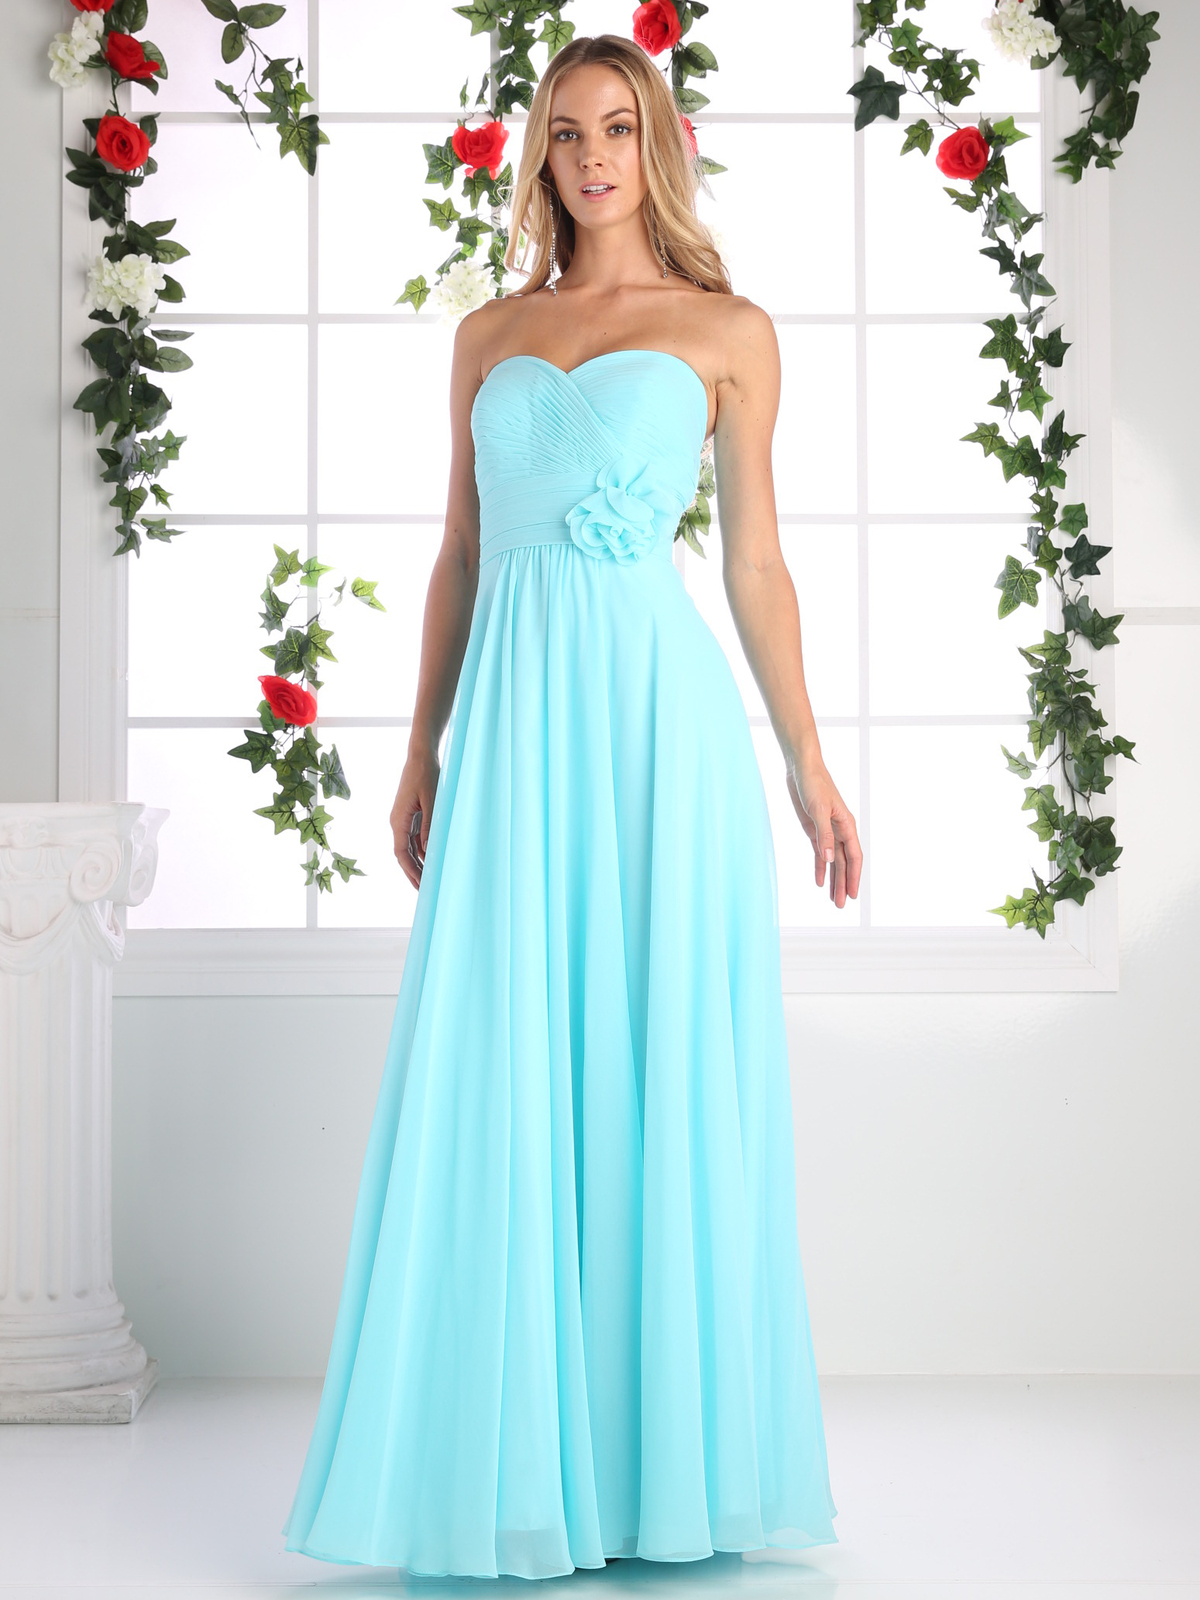 Cinderella bridesmaids dresses image collections braidsmaid cinderella bridesmaid dresses gallery braidsmaid dress cocktail ruched sweetheart bridesmaid dress with floral accent sung cd ombrellifo Image collections